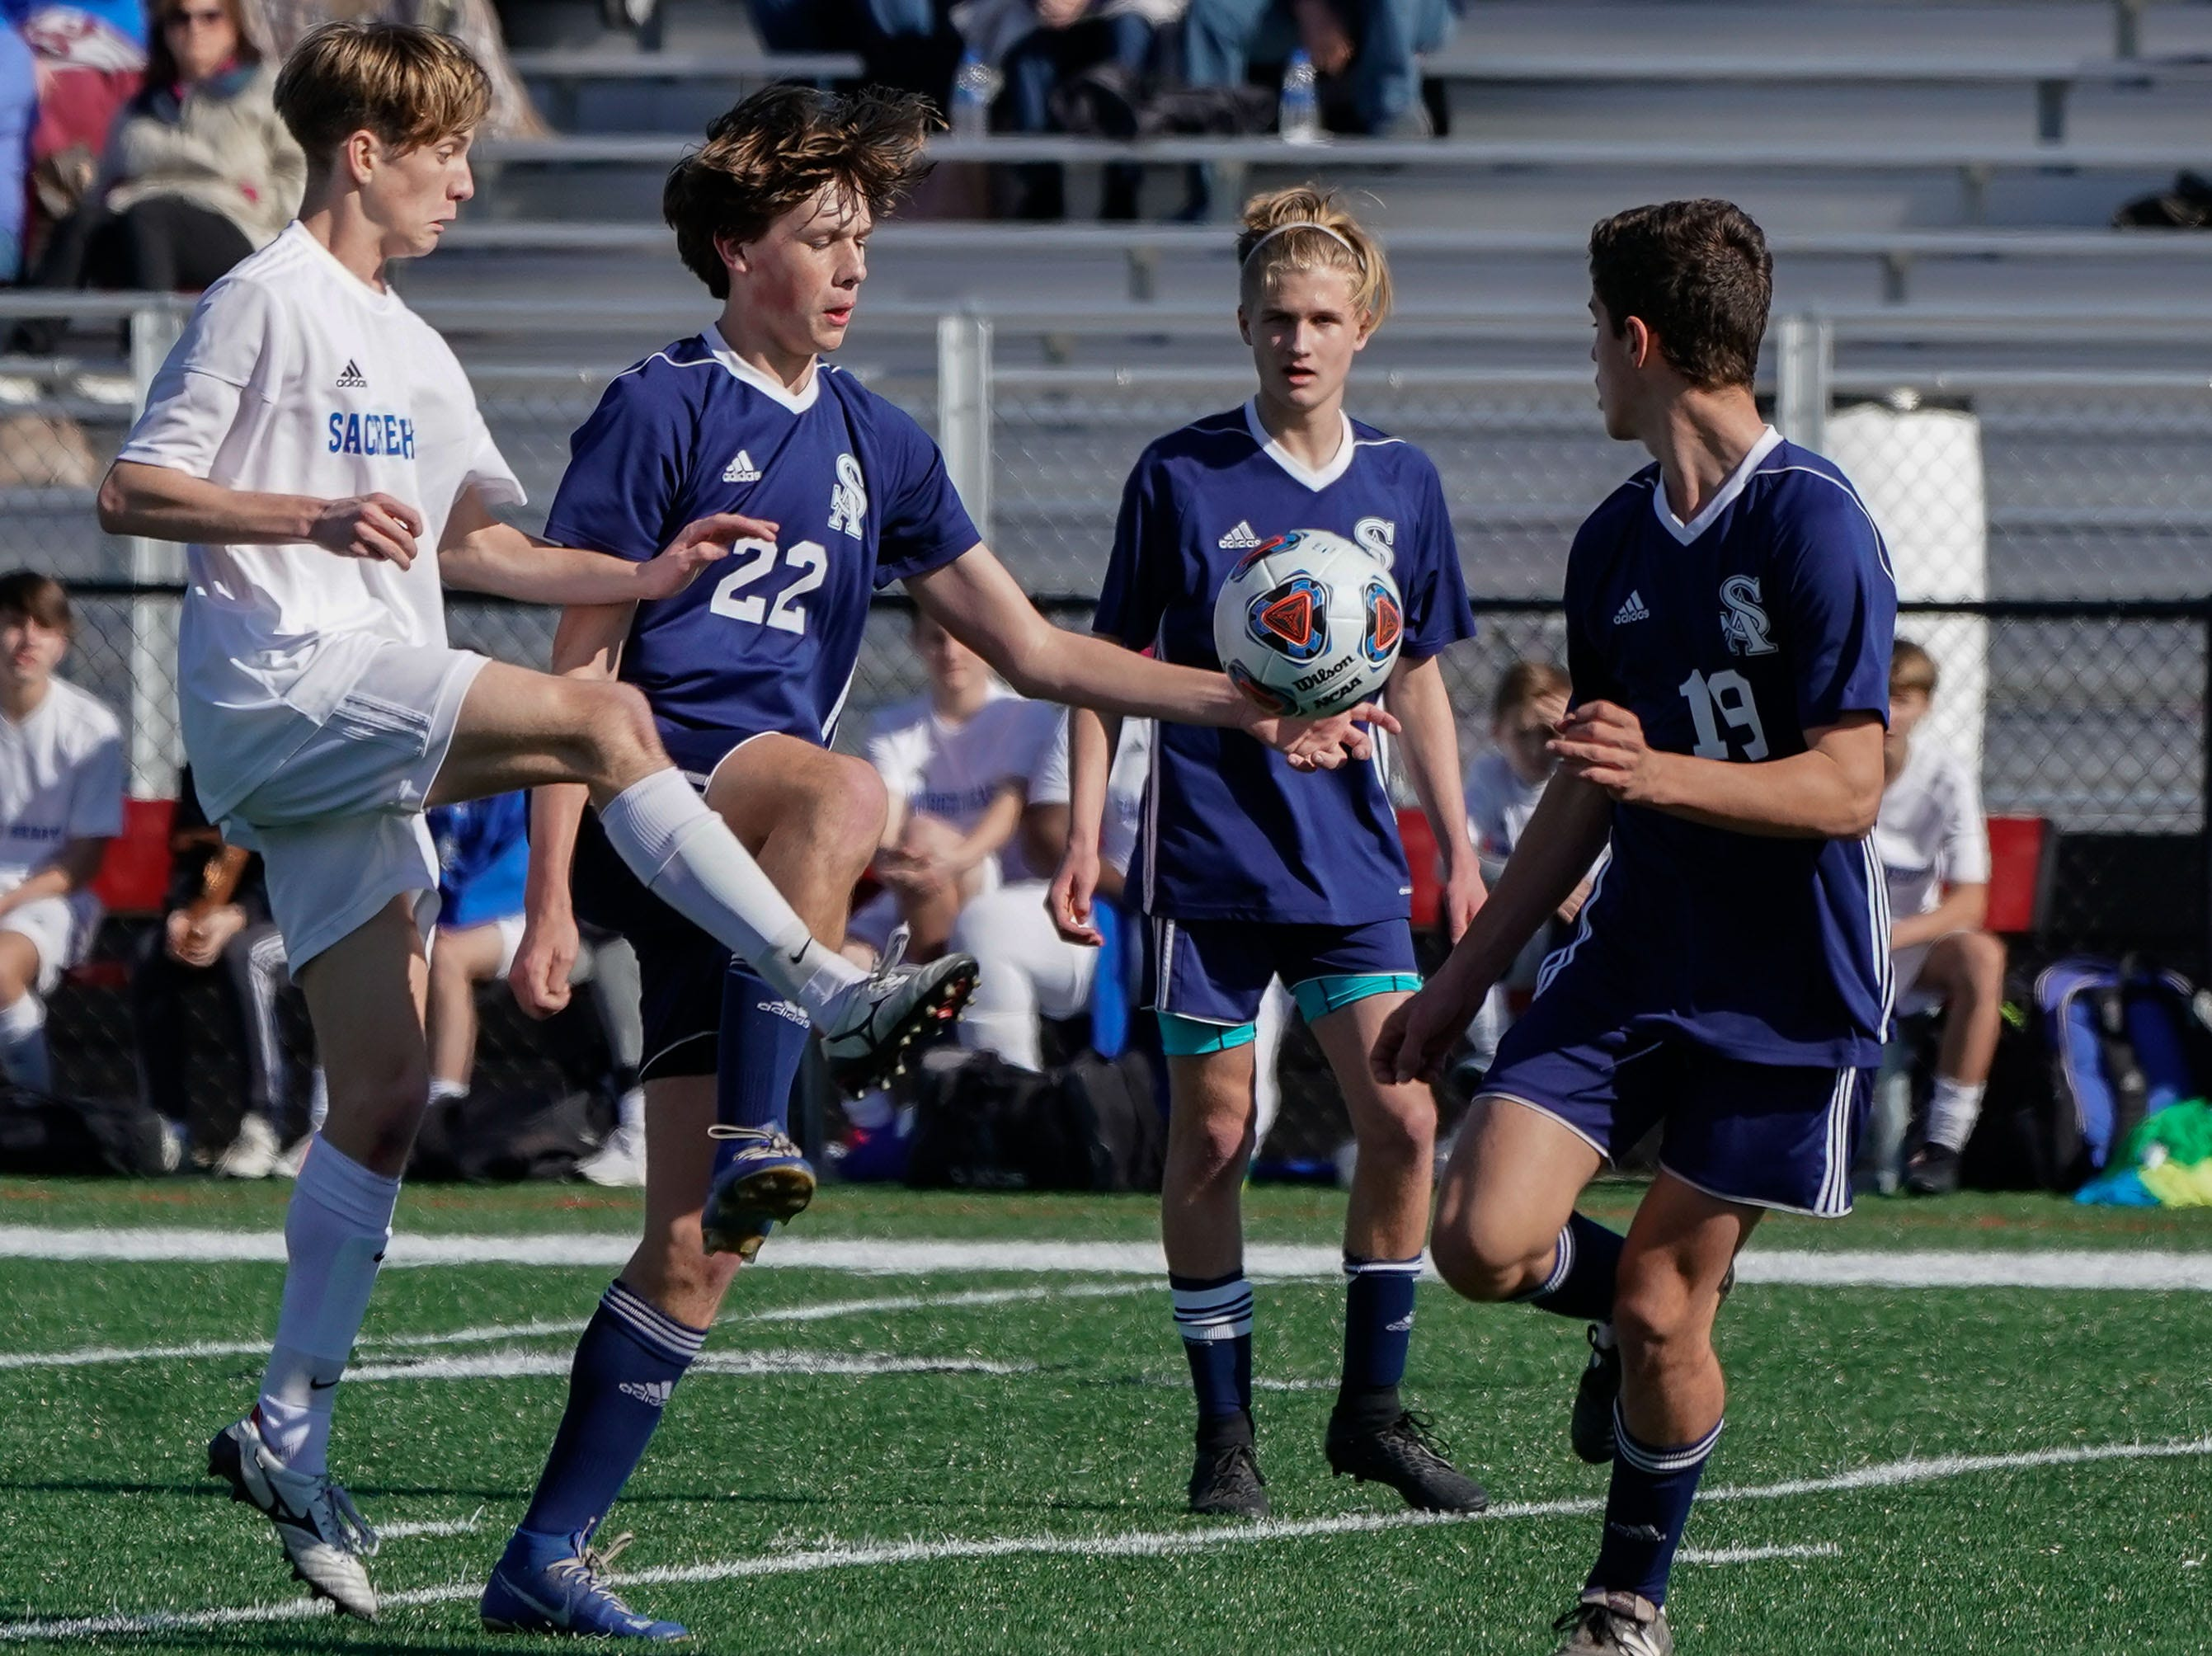 St. Andrew's Chadwick Collins (22) tries to control a ball against Sacred Heart's Heath Hogan (16) during the MHSAA 1A,2A,3A  Boys Soccer Championships held at Brandon High School in Brandon, MS, Saturday February 9, 2019.(Bob Smith-For The Clarion Ledger)